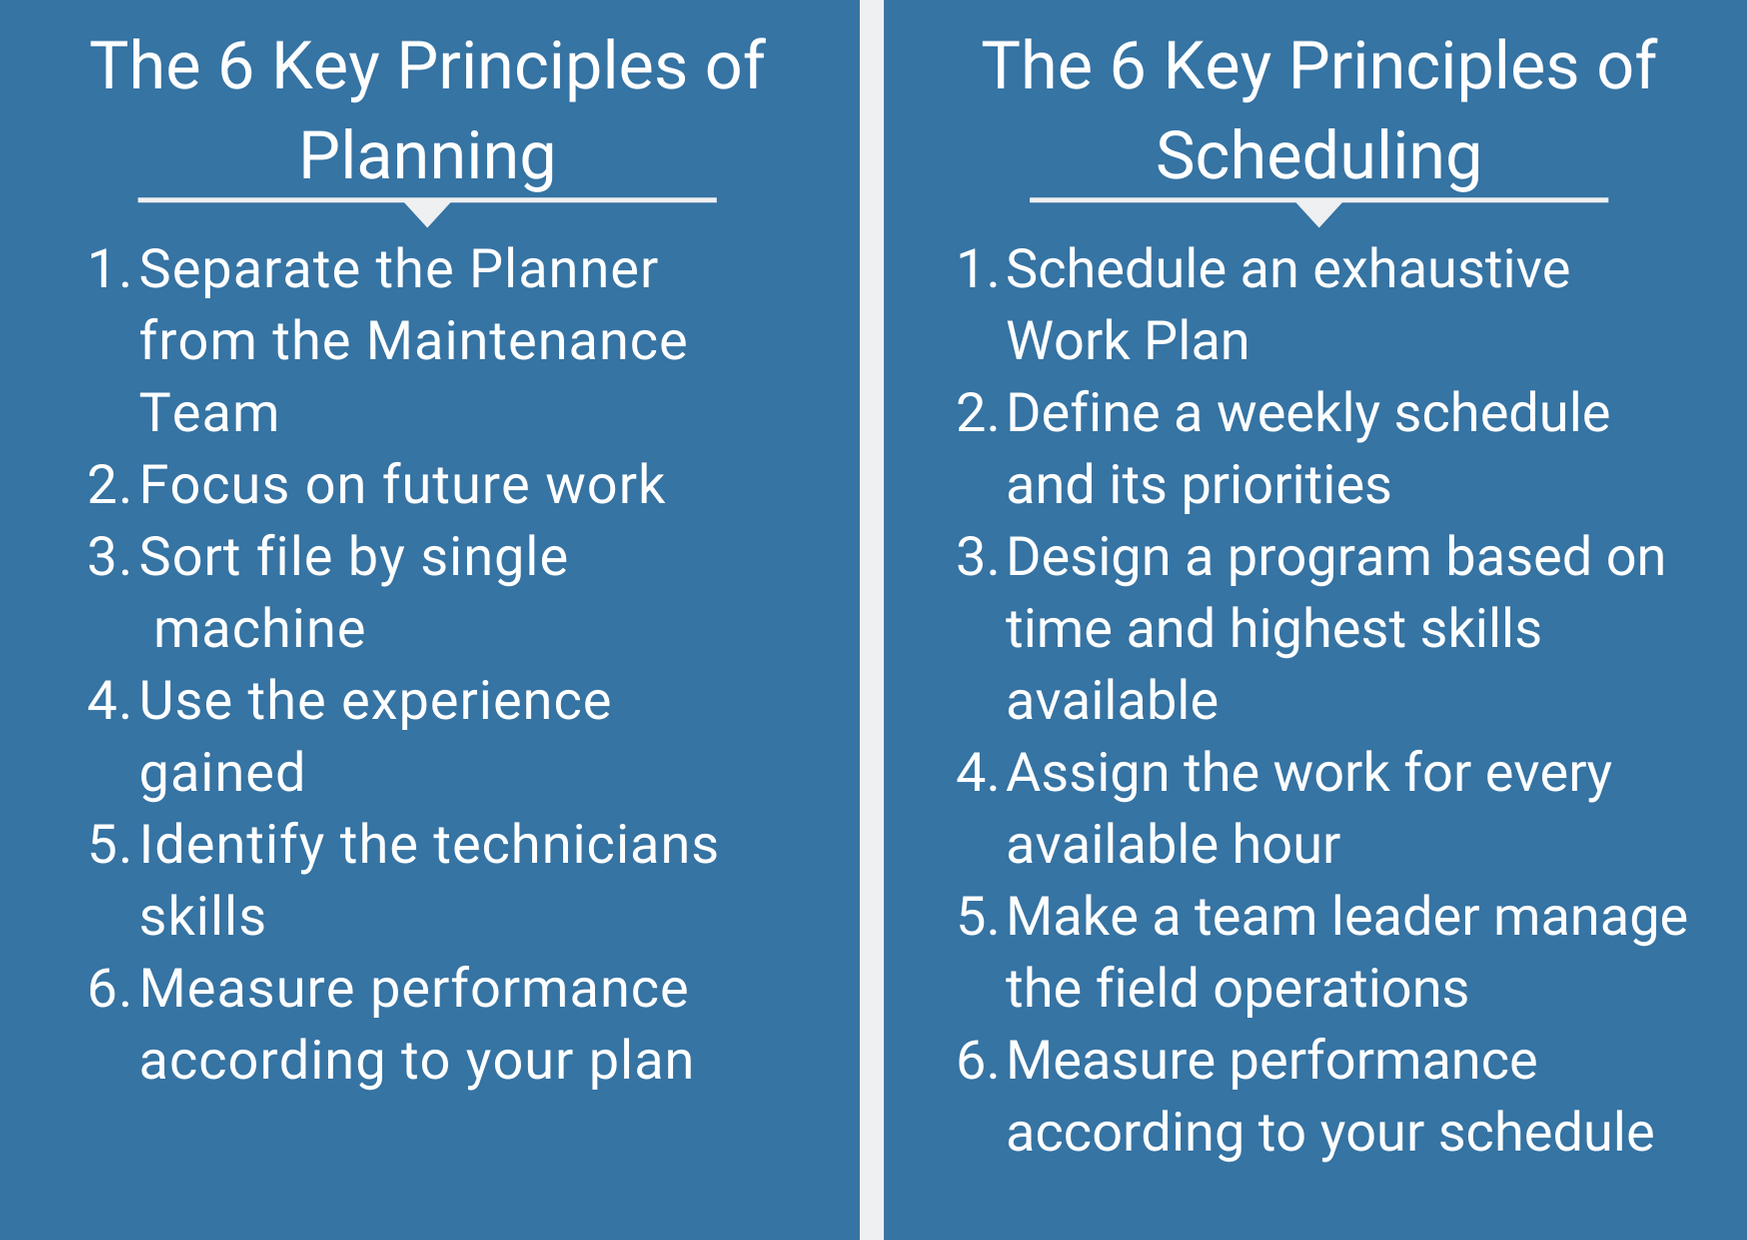 Summary of Planning&Scheduling Key Principles